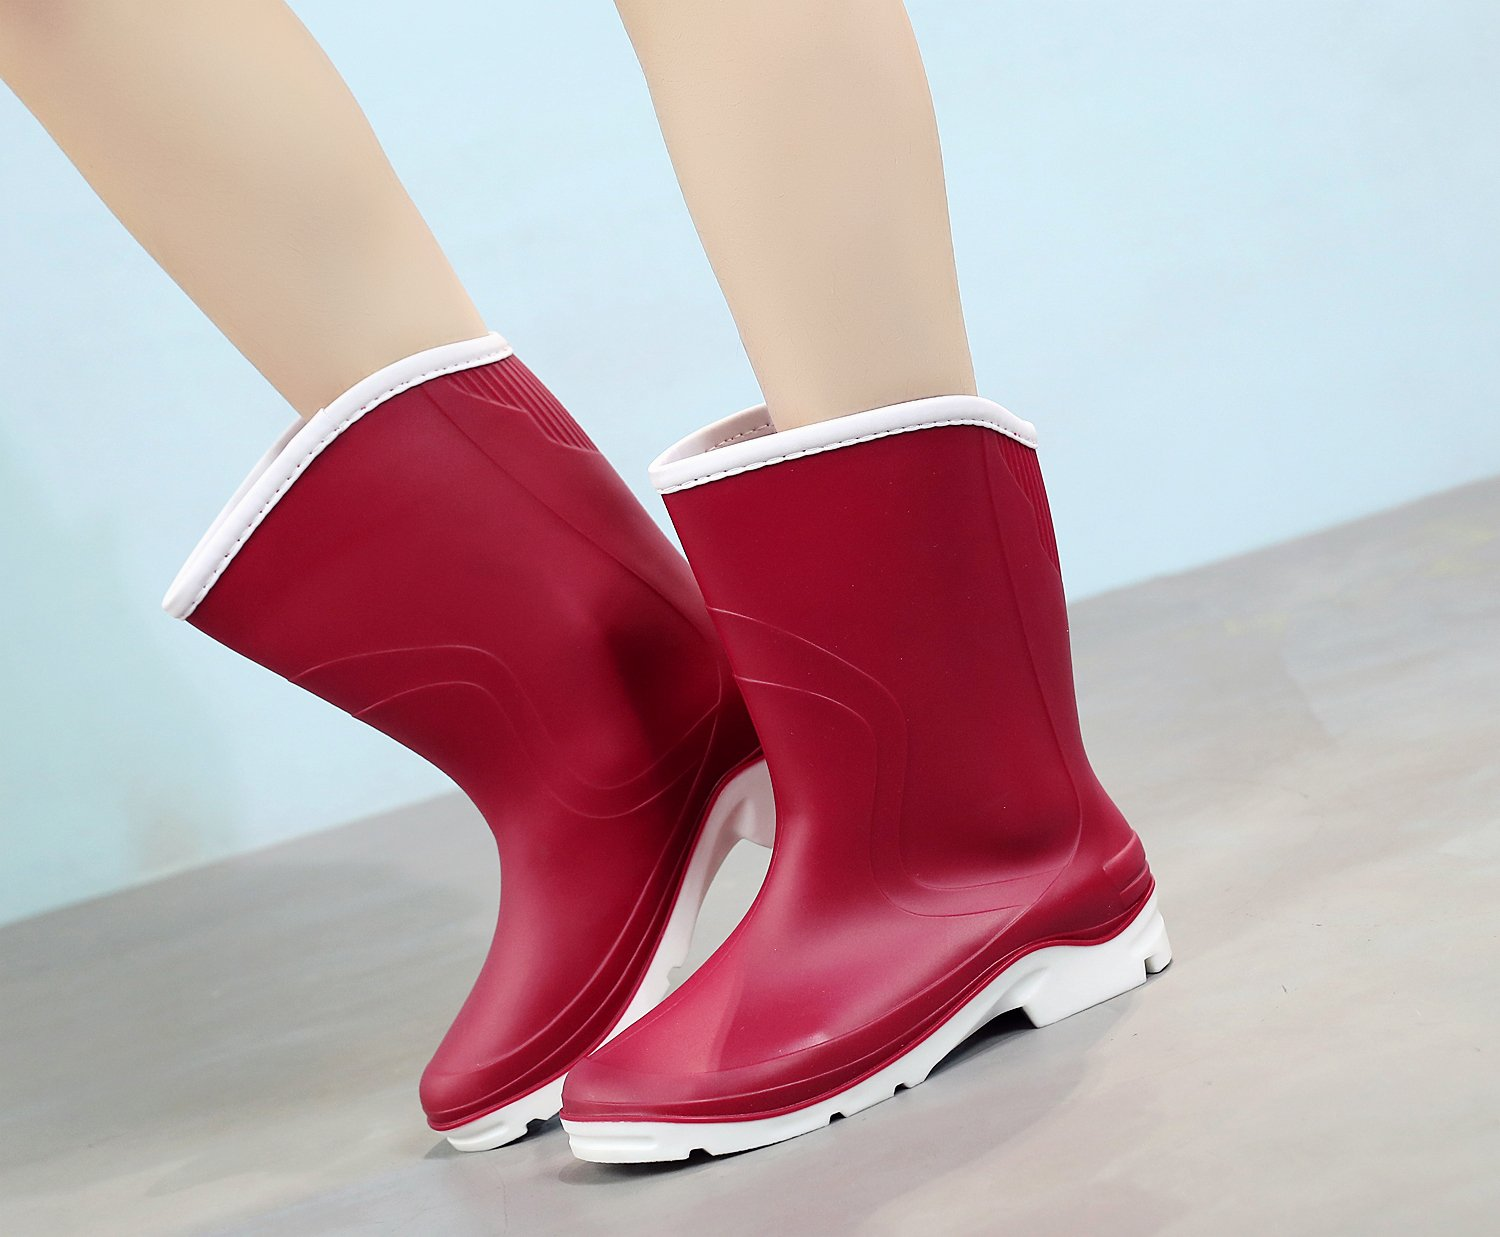 Kontai Women Half Calf Ankle Rubber Rainboots 2 Color Waterproof Boots for Garden Rain Round Toe Rainboots Size 7.5 by Kontai (Image #6)